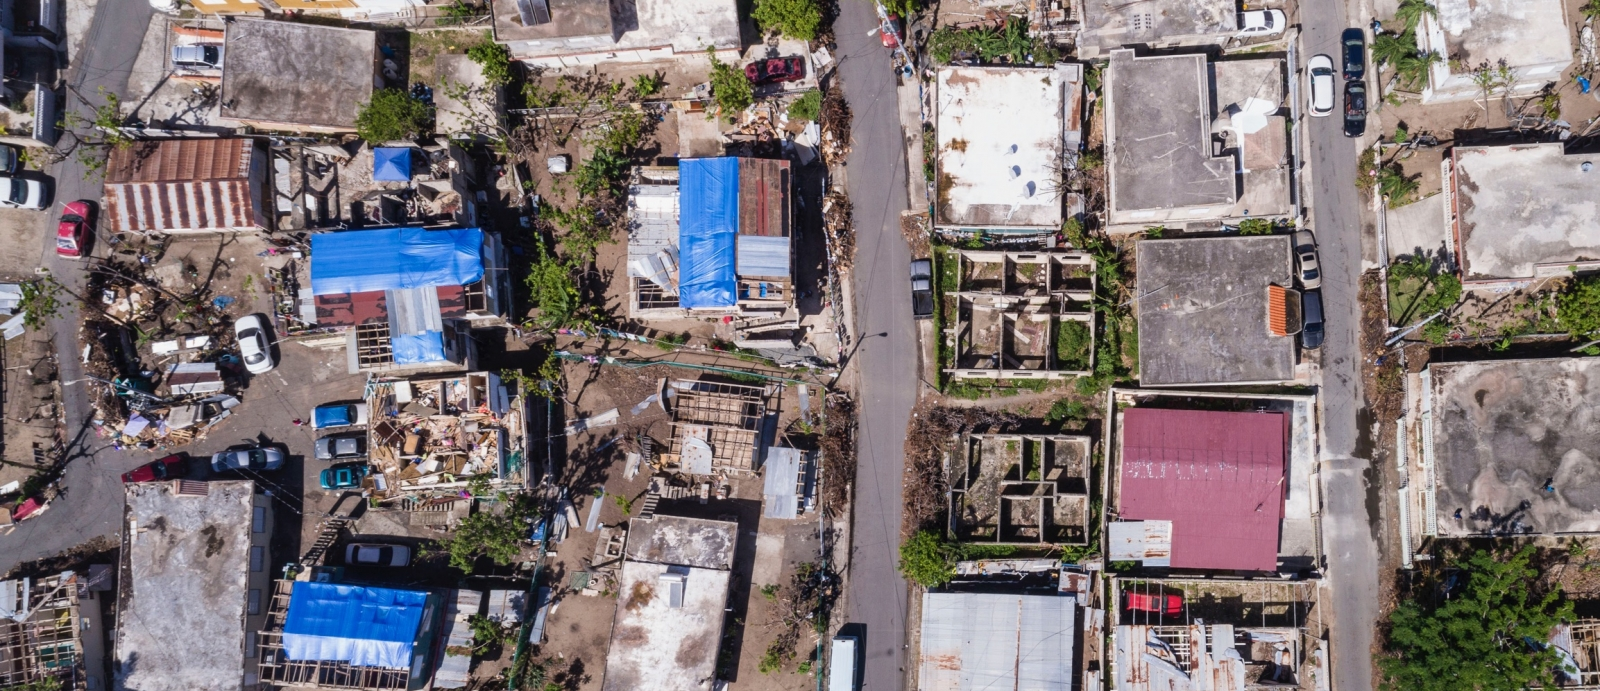 Hurricane damage in Puerto Rico from Hurricane Maria